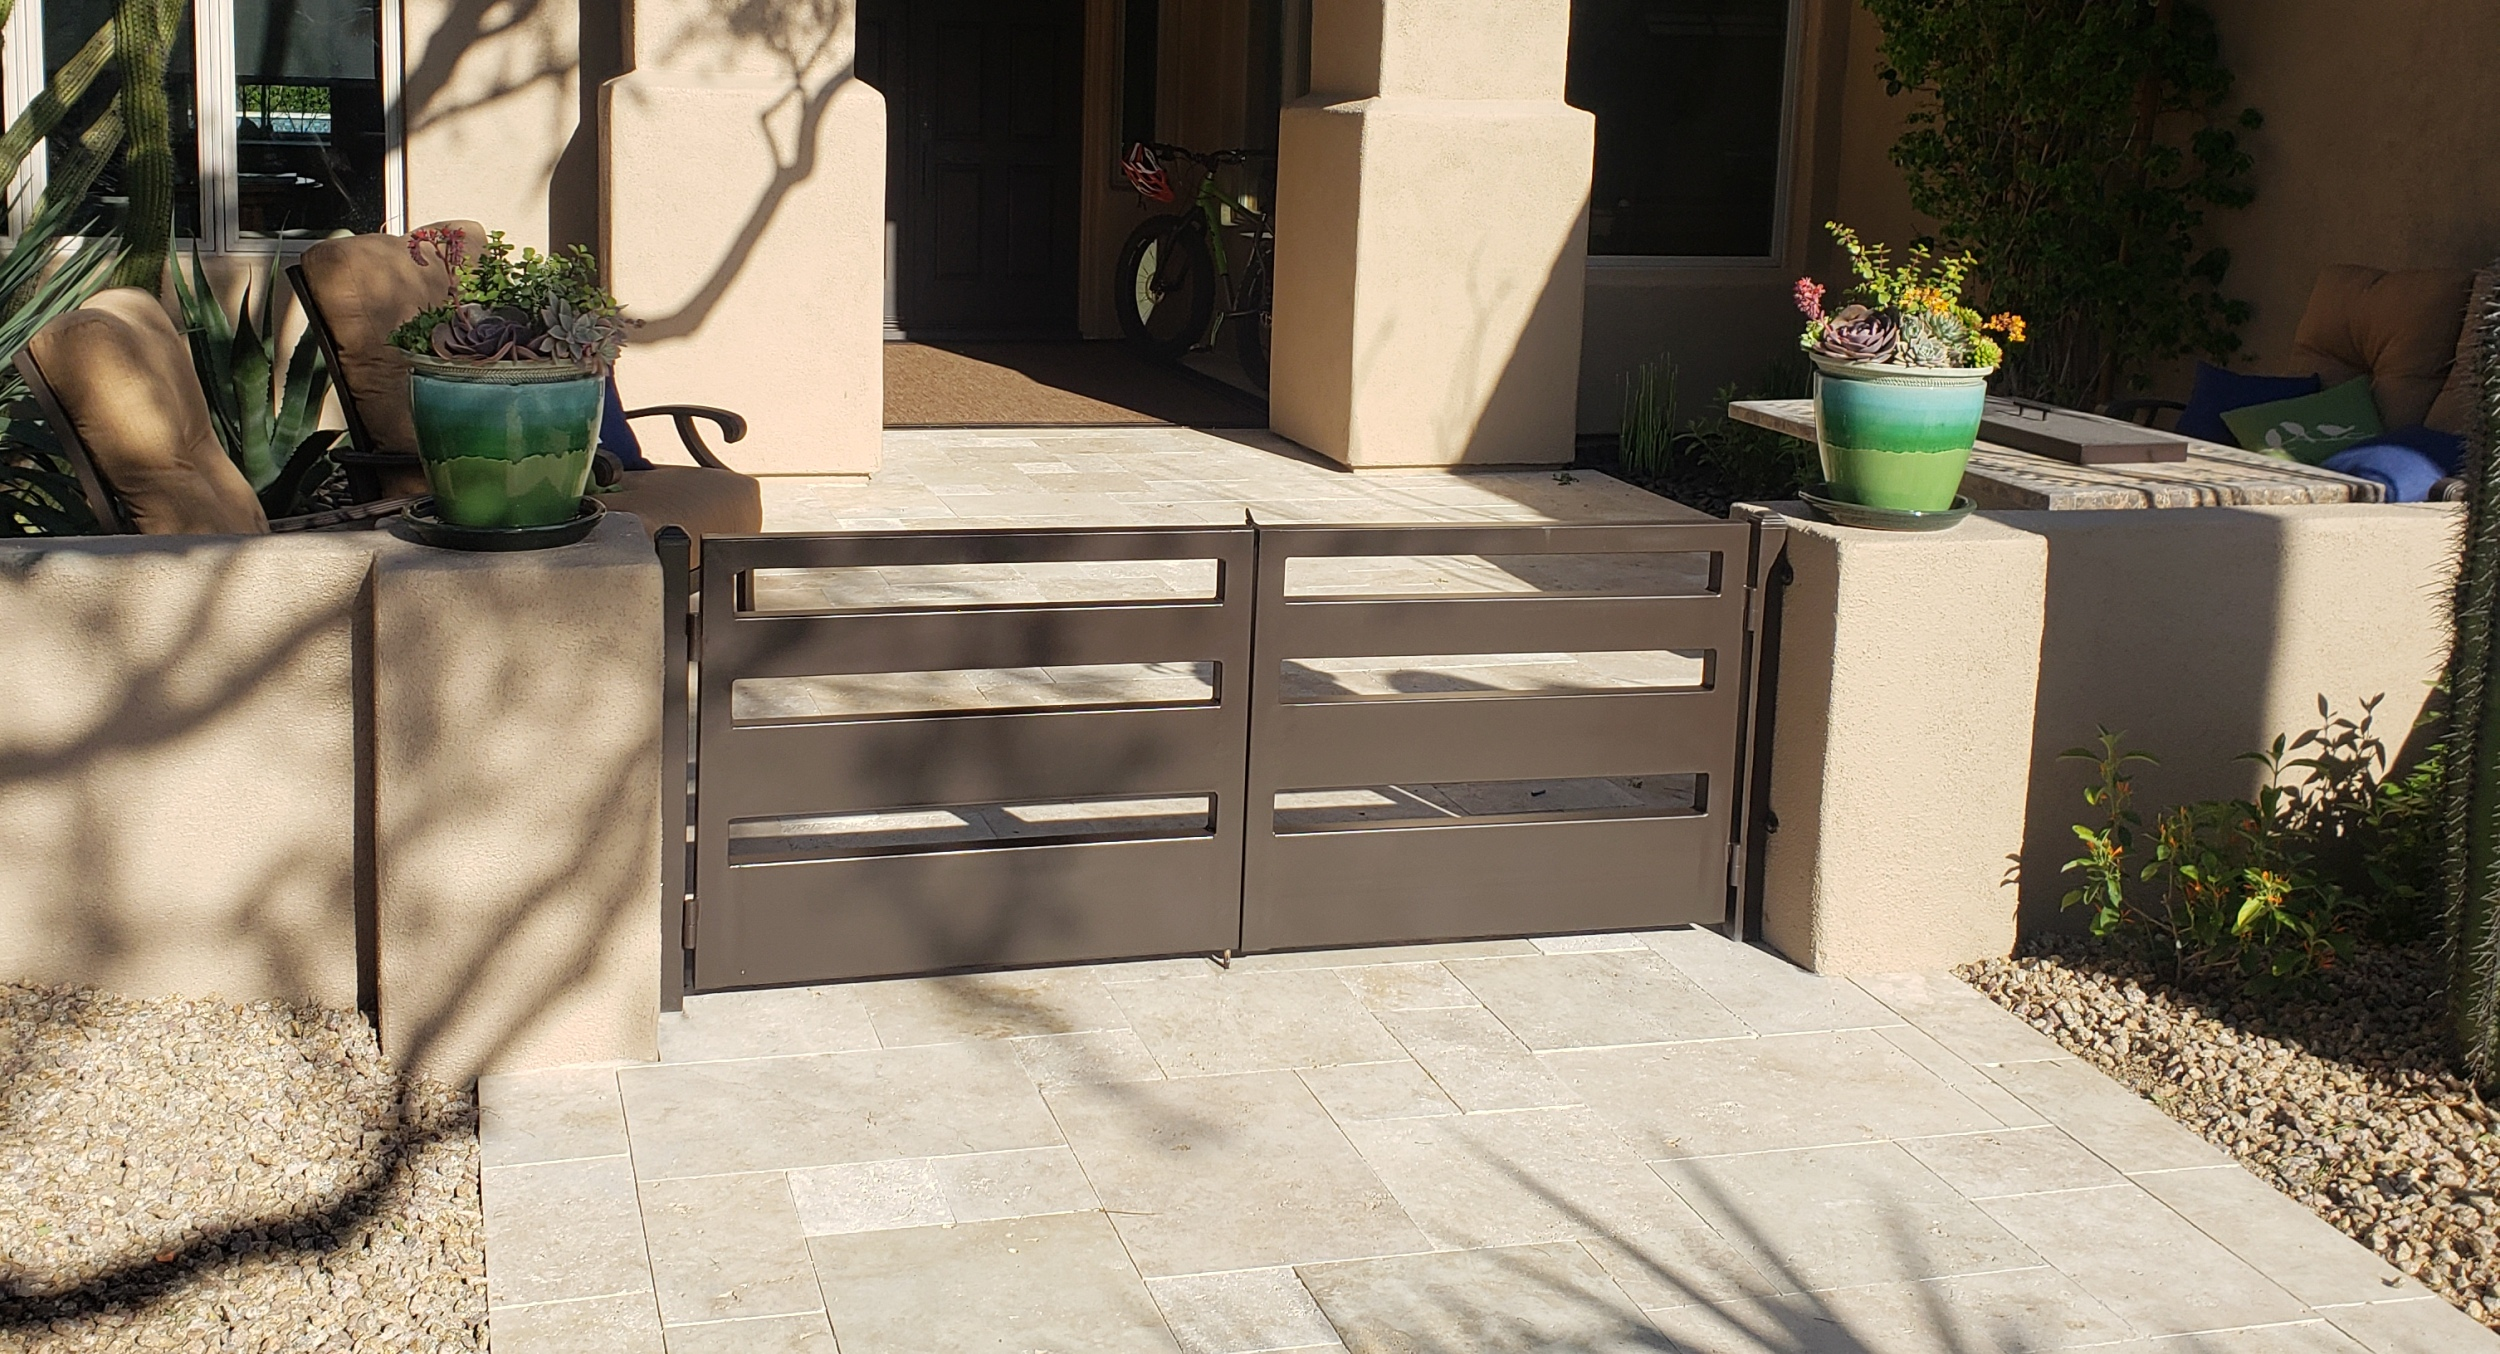 Got a lackluster approach to your front door ? Check out travertine pavers. Scottsdale clients had us swap out builder's concrete for beautiful travertine.